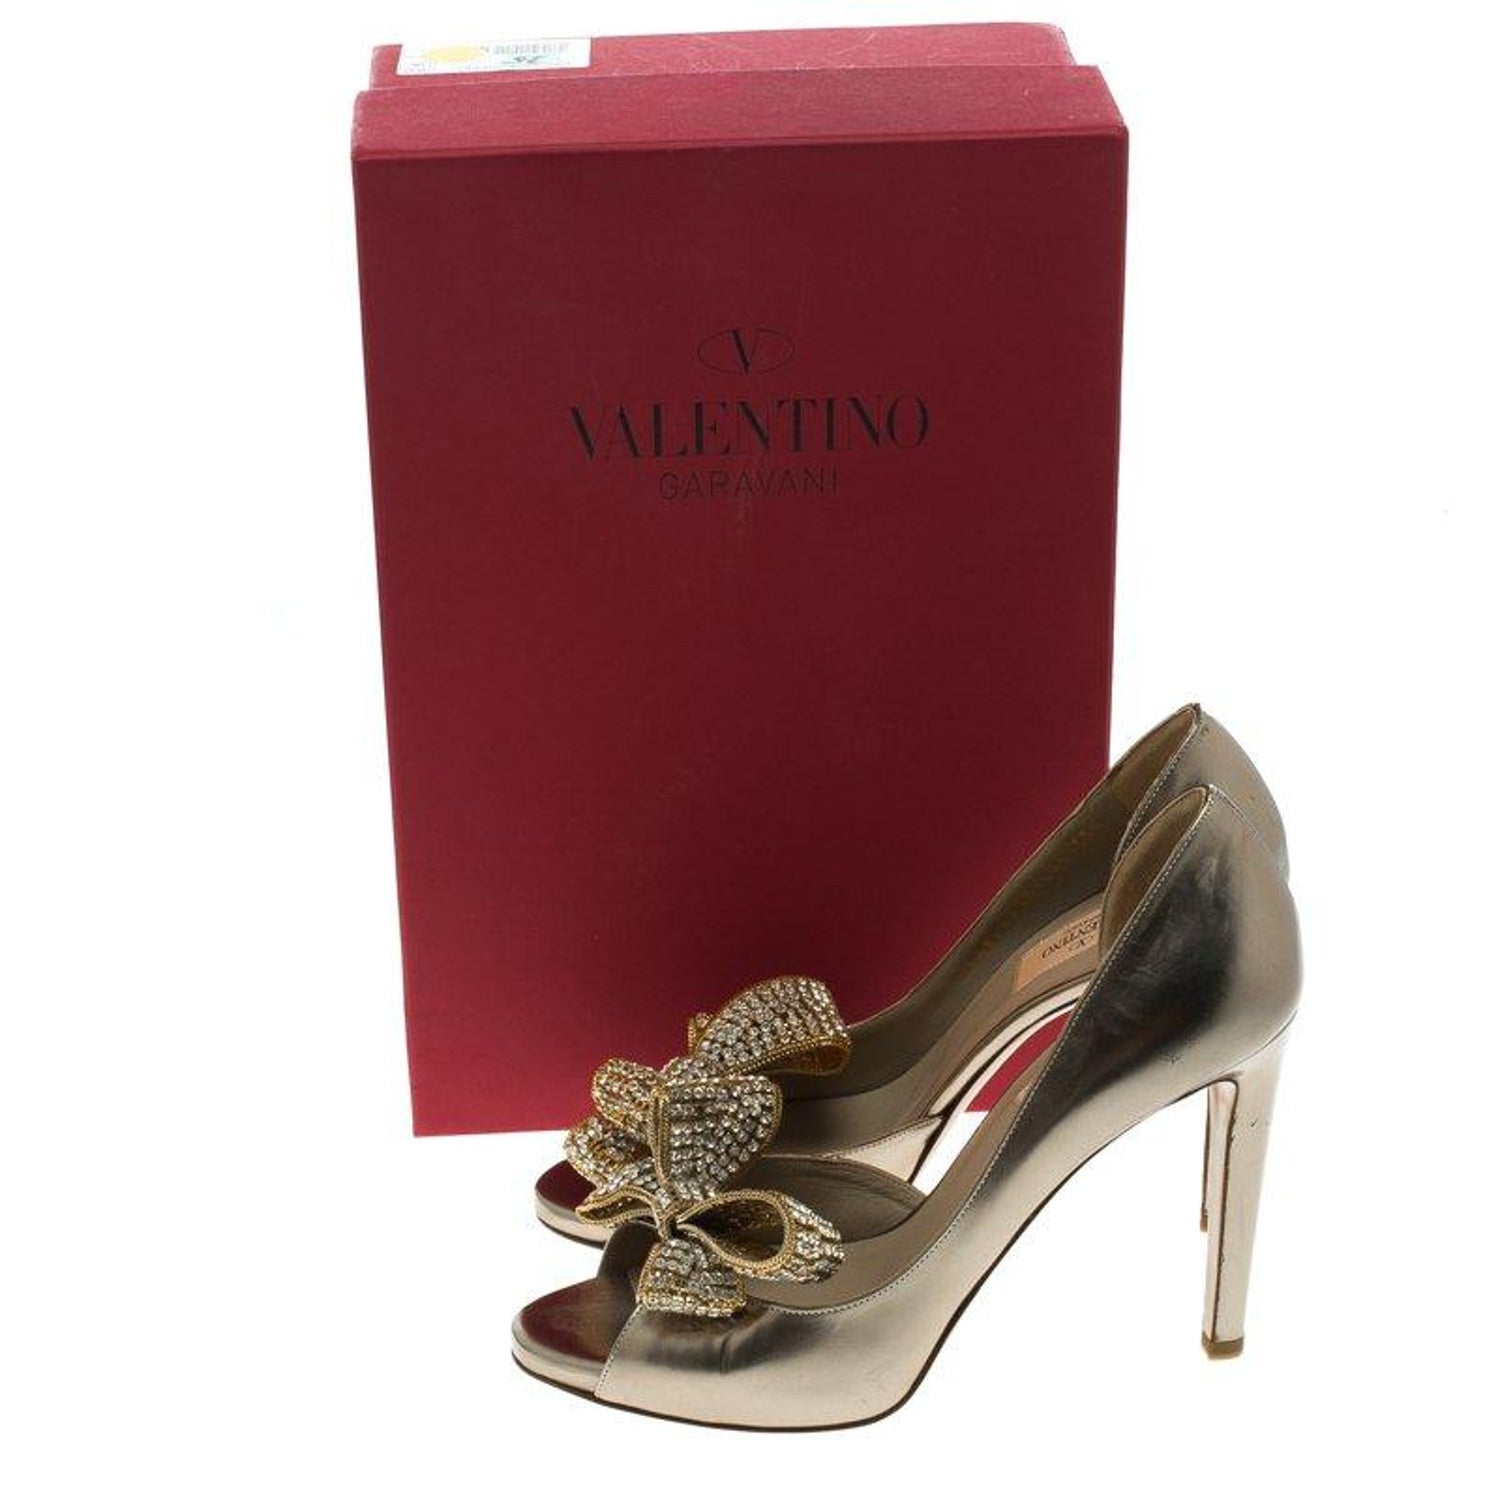 efdec6ce7 Valentino Bronze Metallic Leather Crystal Bow Detail D'orsay Pumps Size 38  at 1stdibs